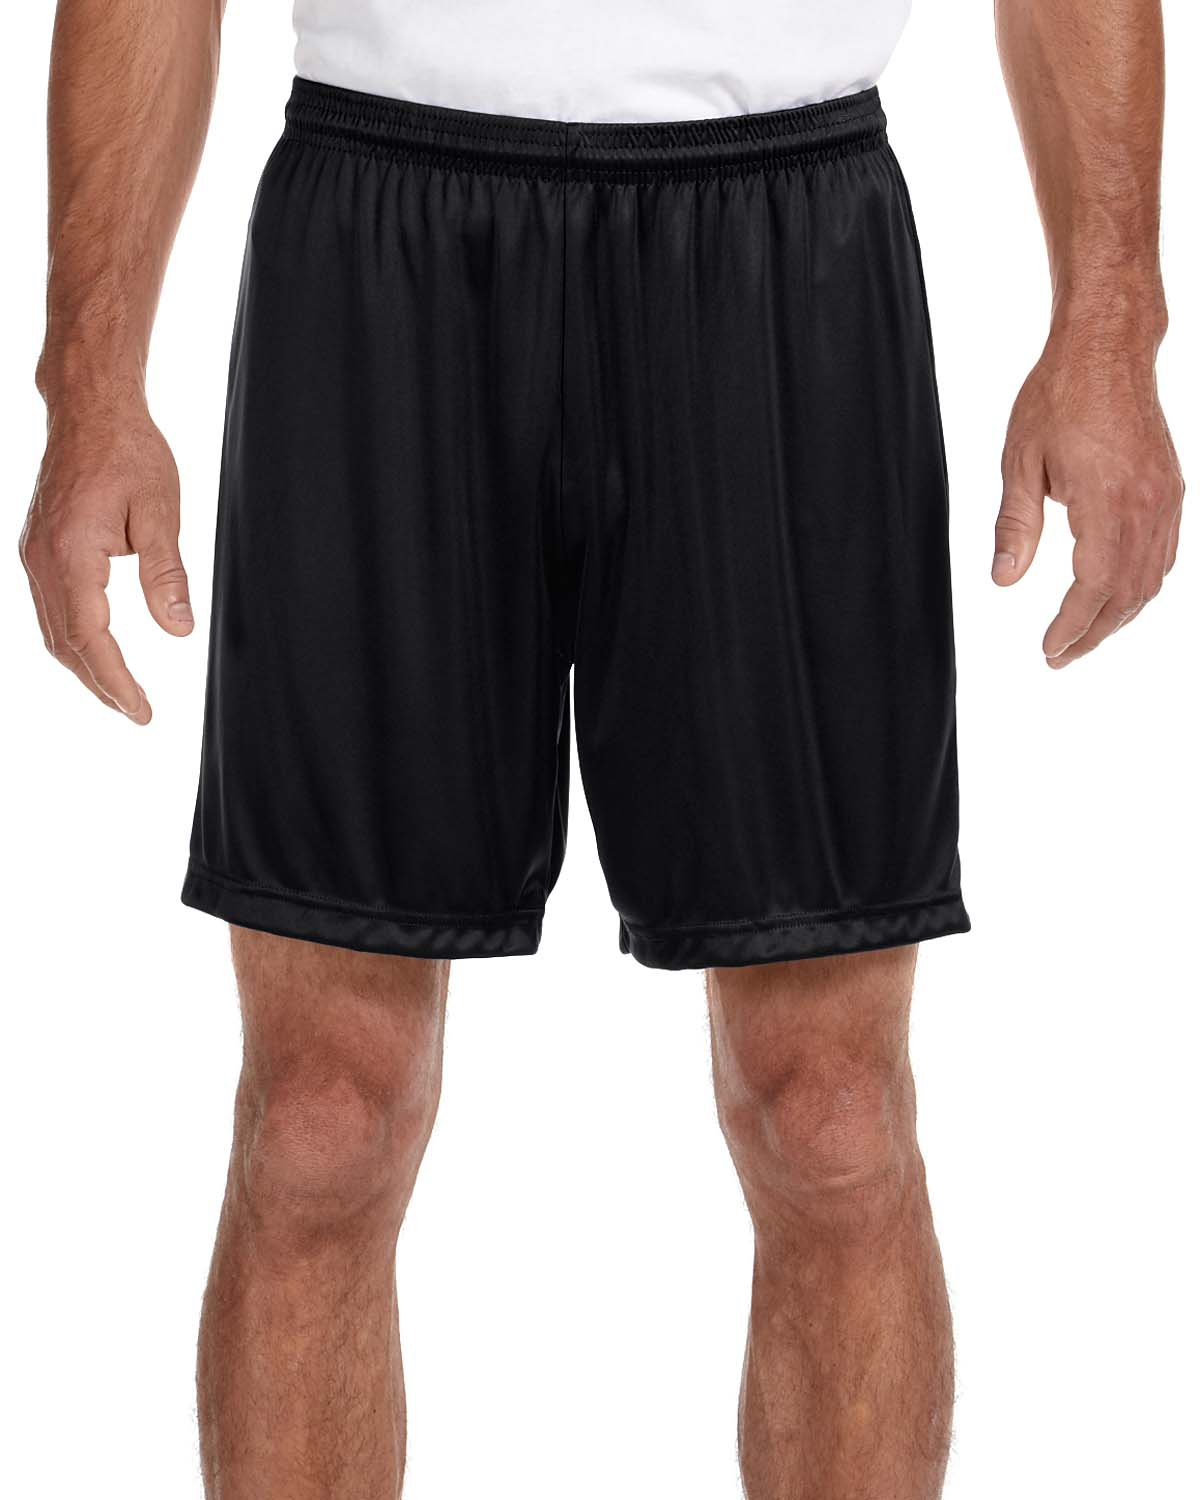 'A4 N5244 Adult 7 Inch Inseam Polyester Cooling Performance Shorts'